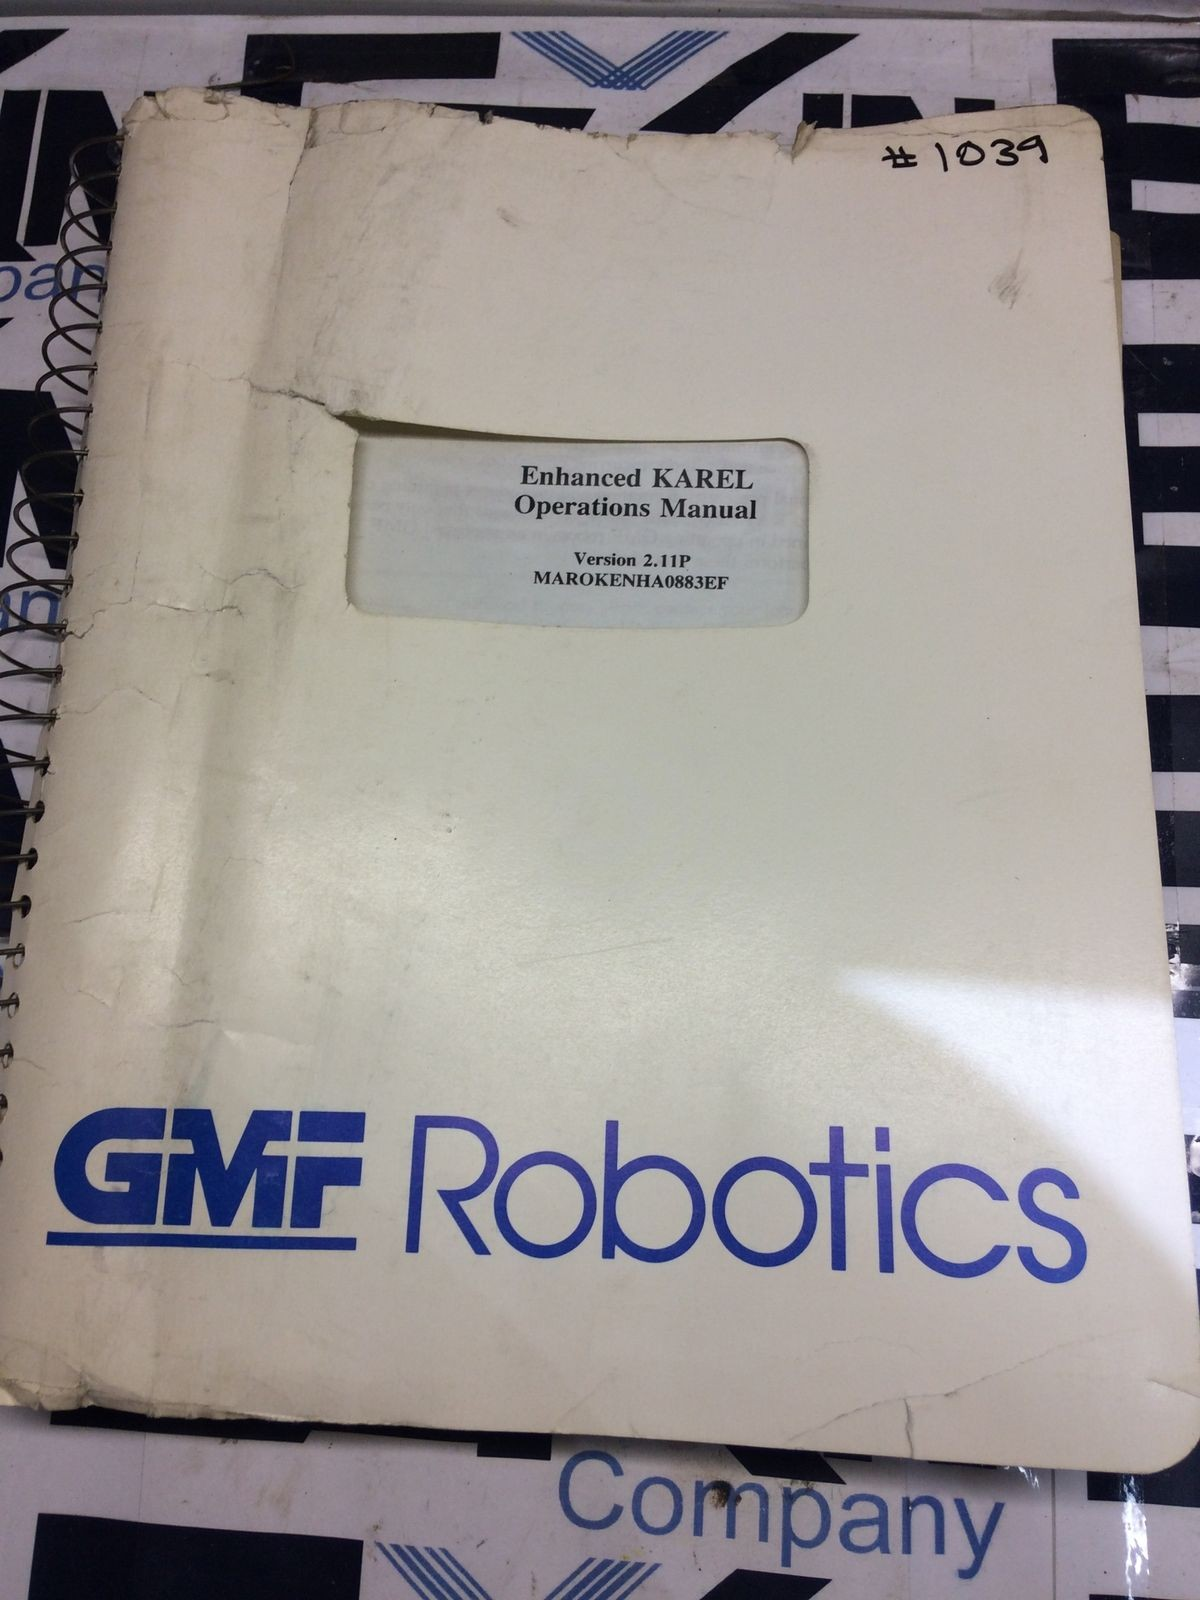 Fanuc KAREL Operations Manual GMF Robotics V 2.11P